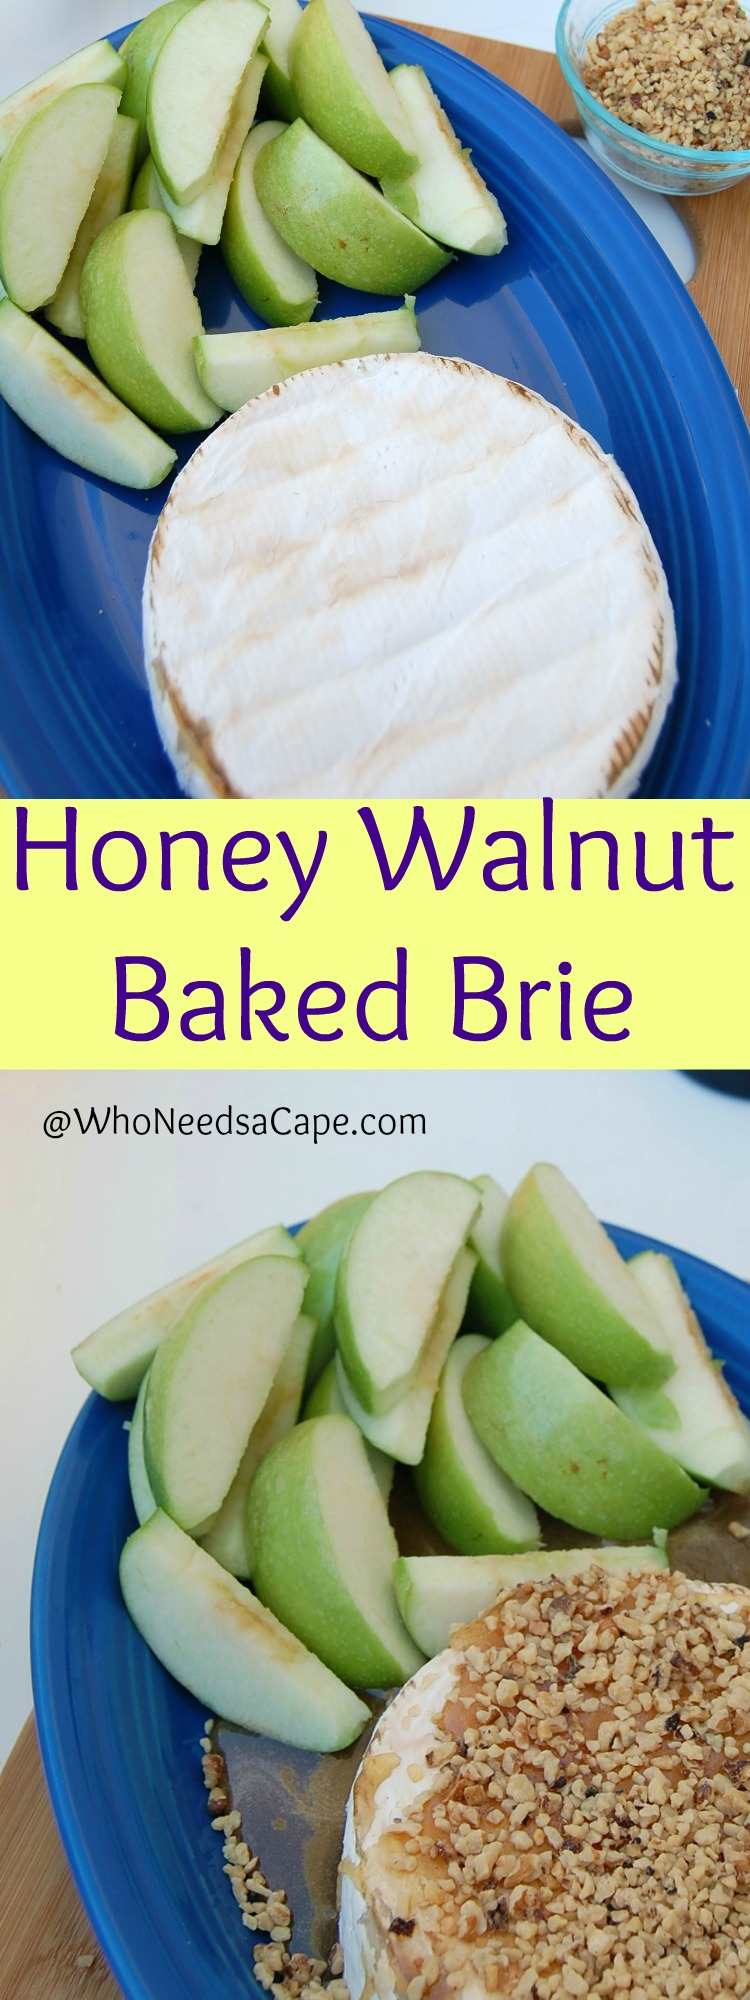 Honey Walnut Baked Brie is so delish - it's easier than you think and you're going to love it! Perfect Wine Night in!